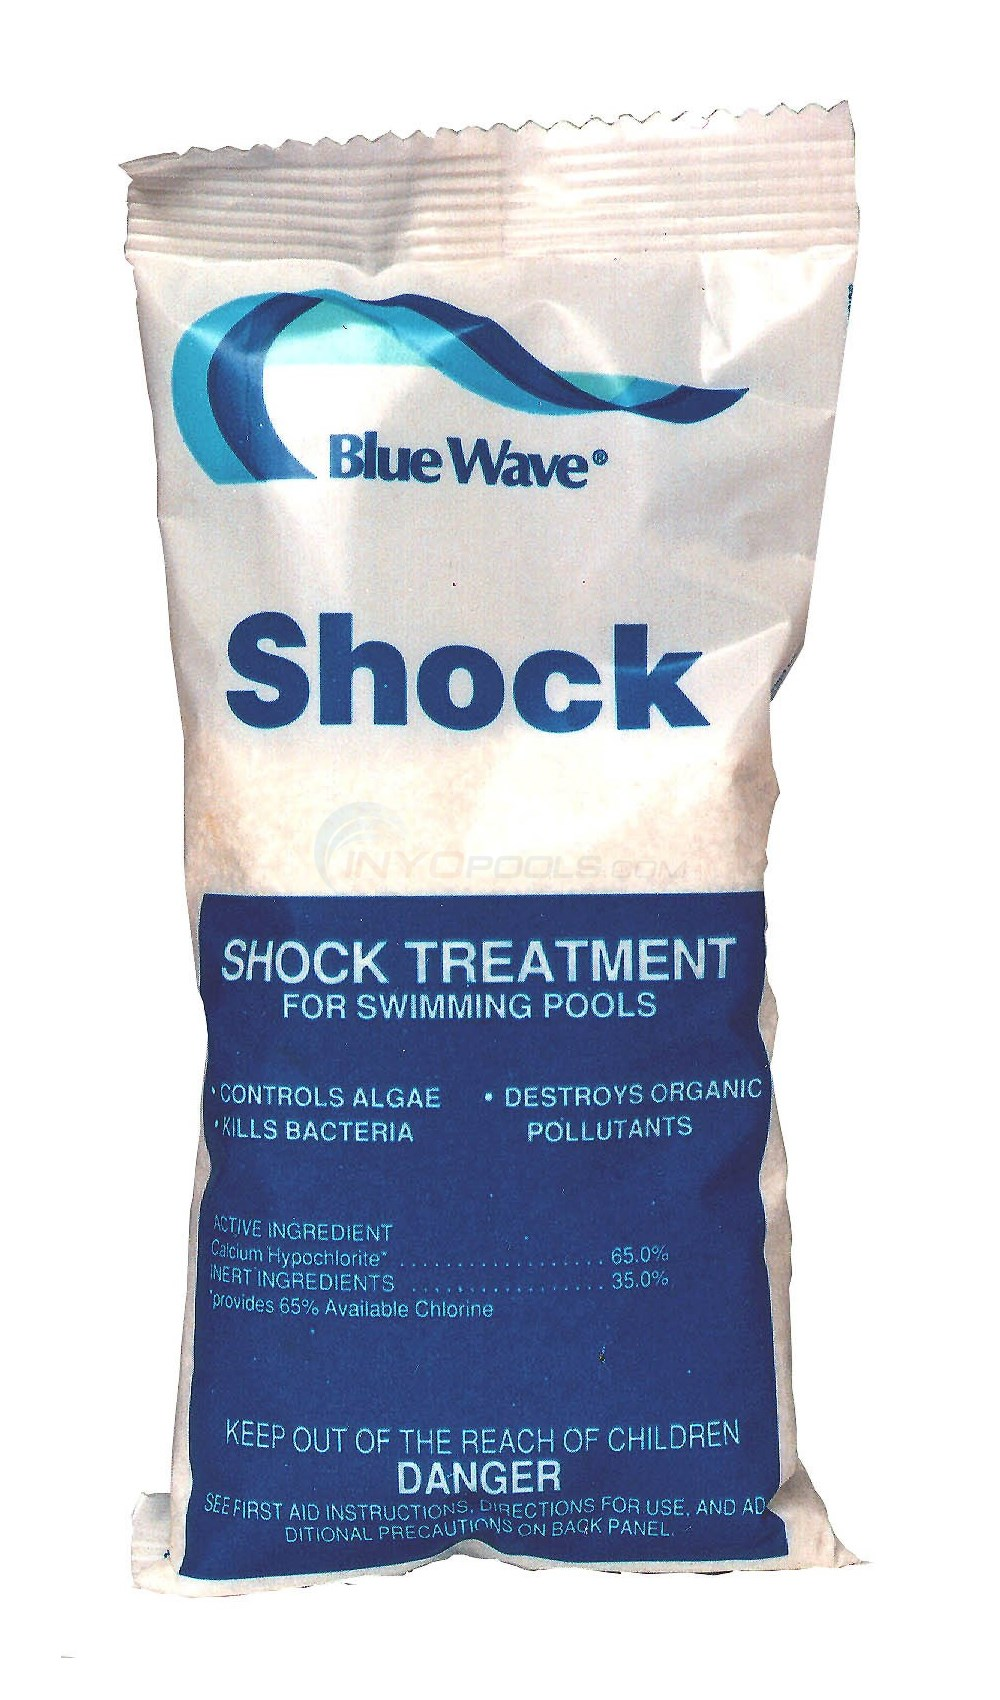 Blue Wave Blast-Out (Cal Hypo) Pool Shock 6 x 1 lb bags - NY399